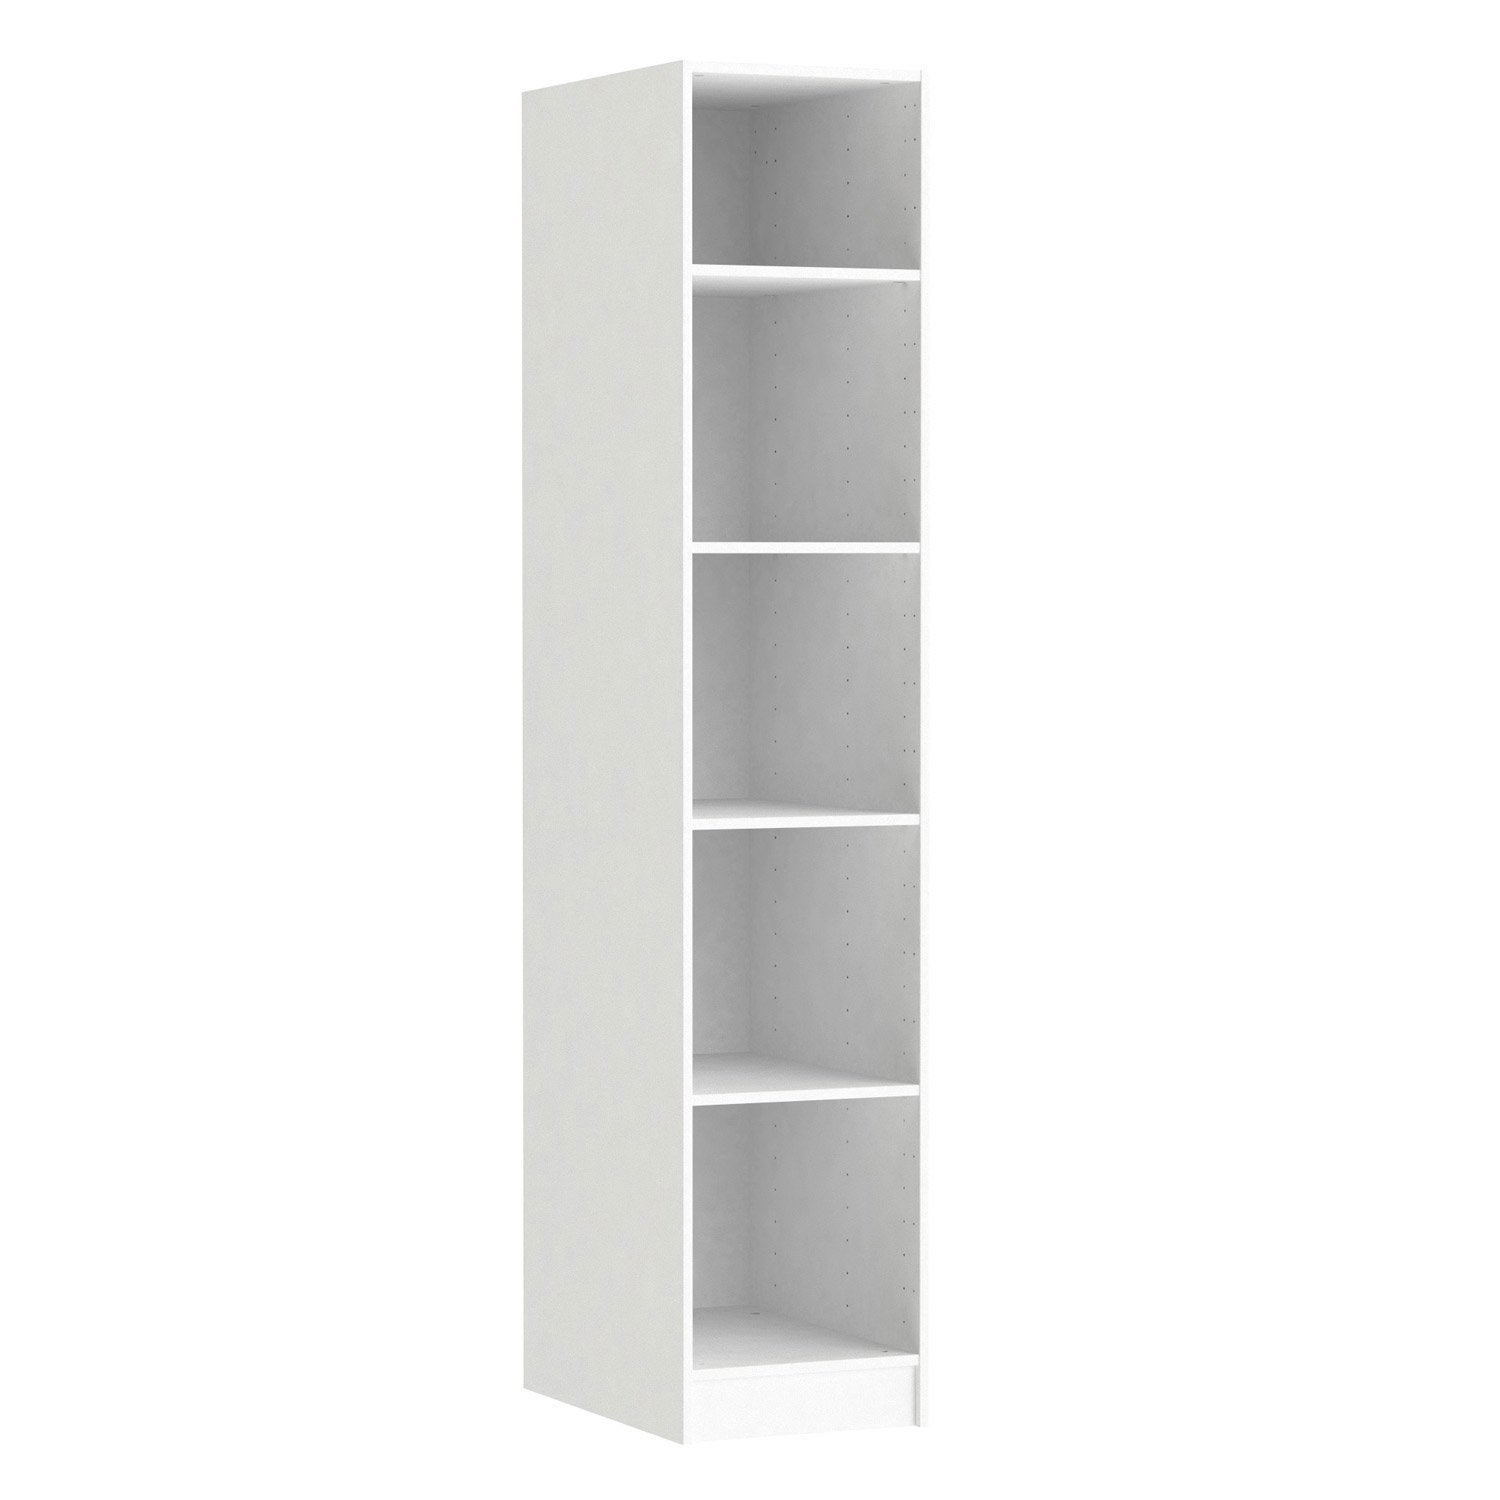 Caisson spaceo home 200 x 40 x 60 cm blanc leroy merlin - Caisson dressing castorama ...